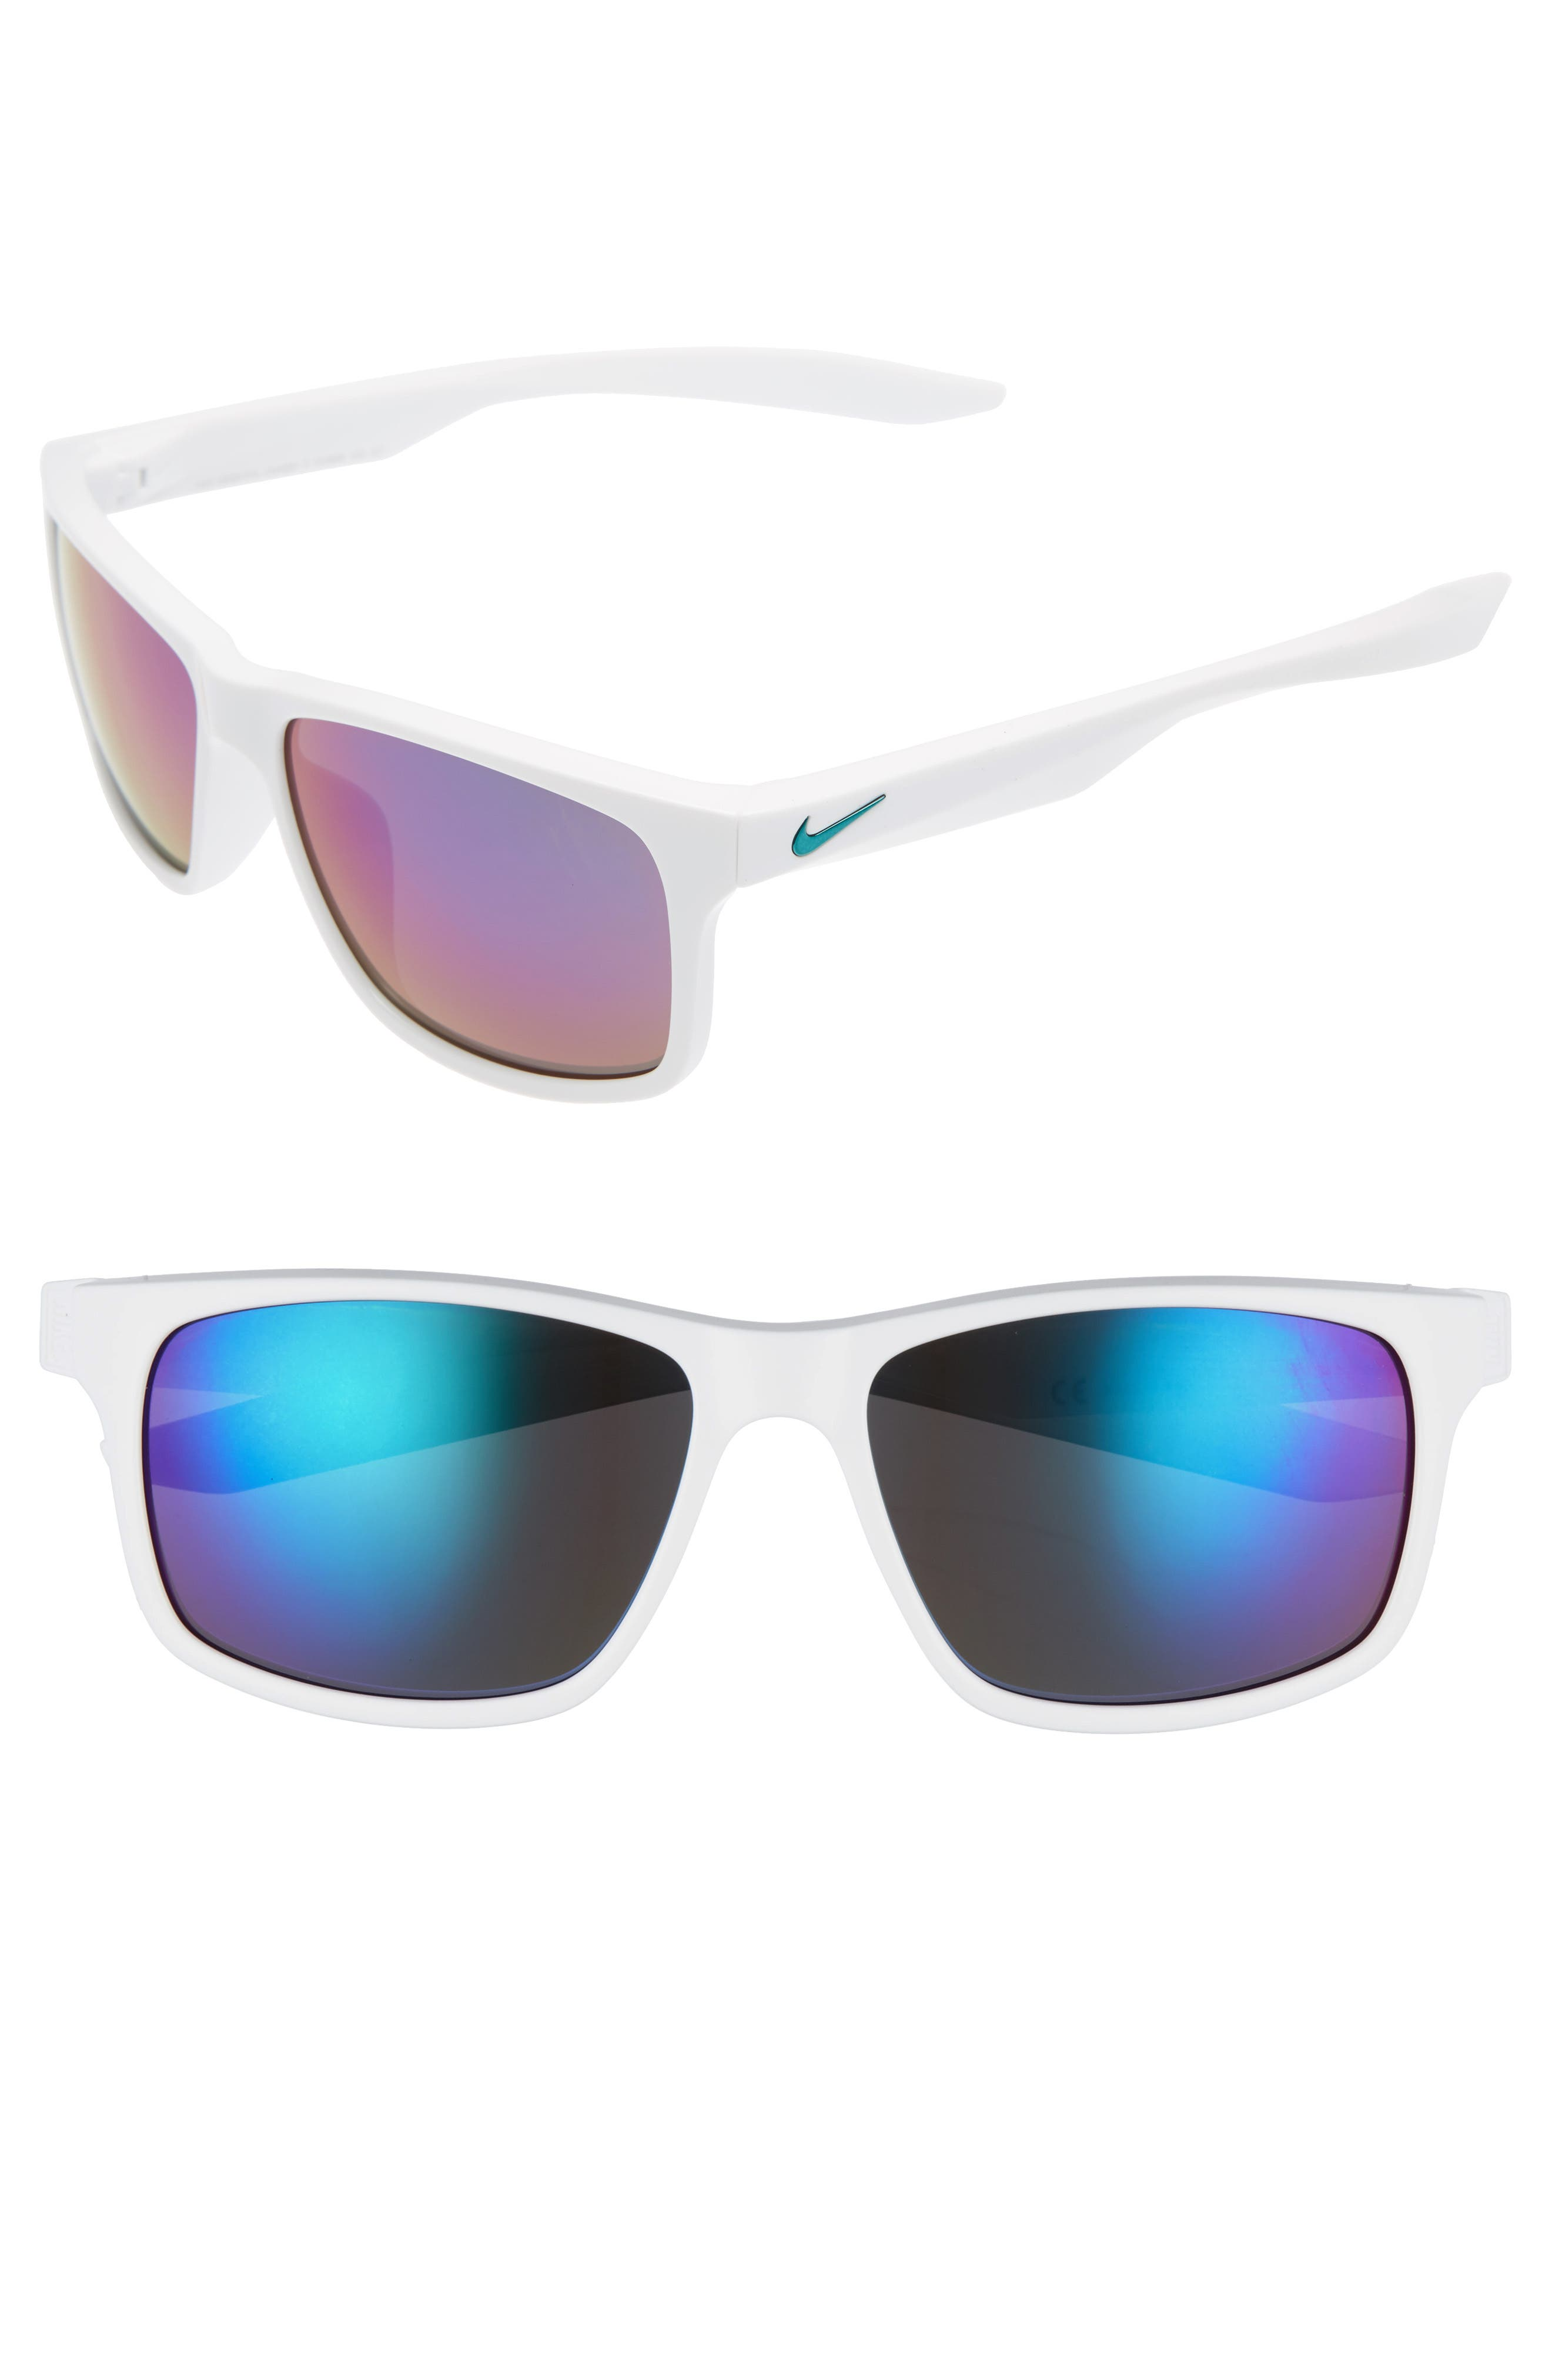 Main Image - Nike Essential Chaser 59mm Reflective Sunglasses